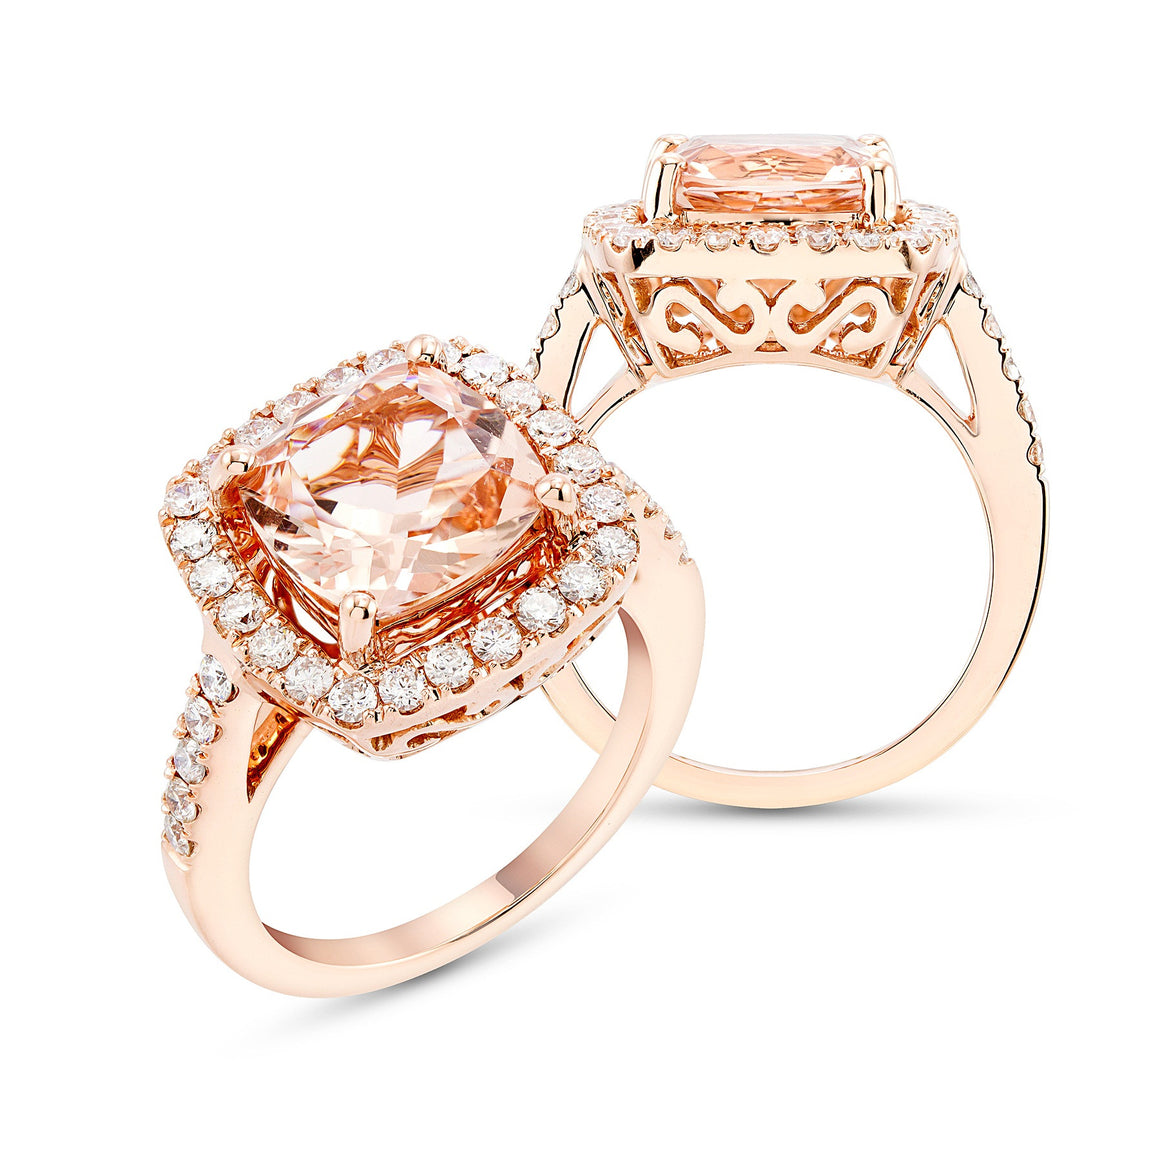 Rose Gold, Cushion Cut Morganite and Daimond Ring